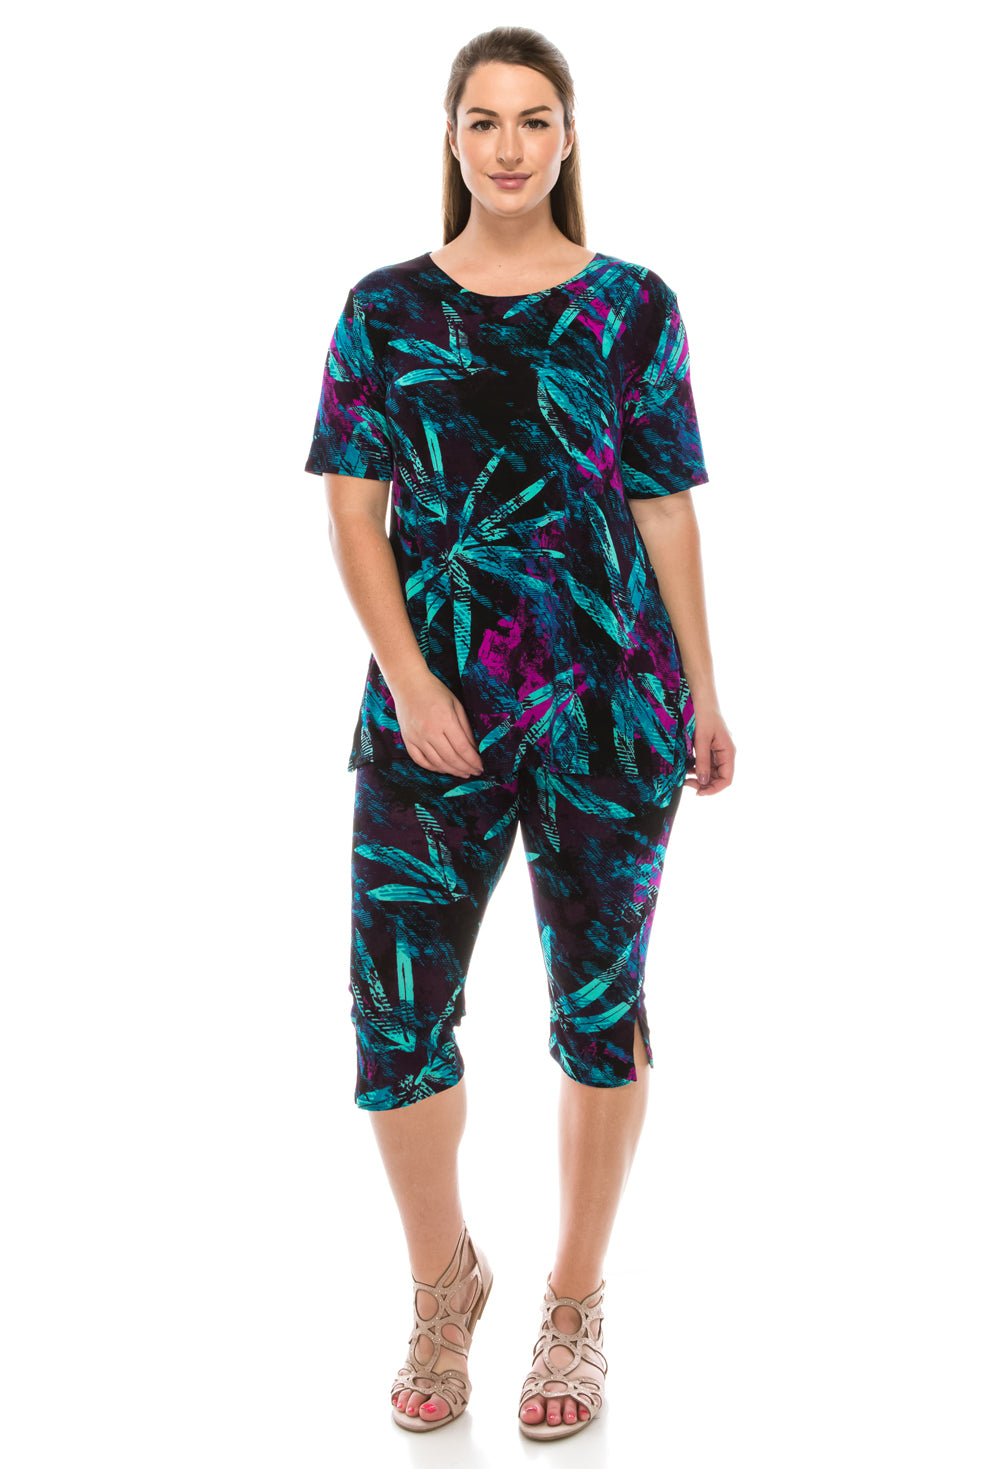 Jostar Women's Stretchy Capri Pants Set Short Sleeve Plus Print, 903BN-SXP-W101 - Jostar Online